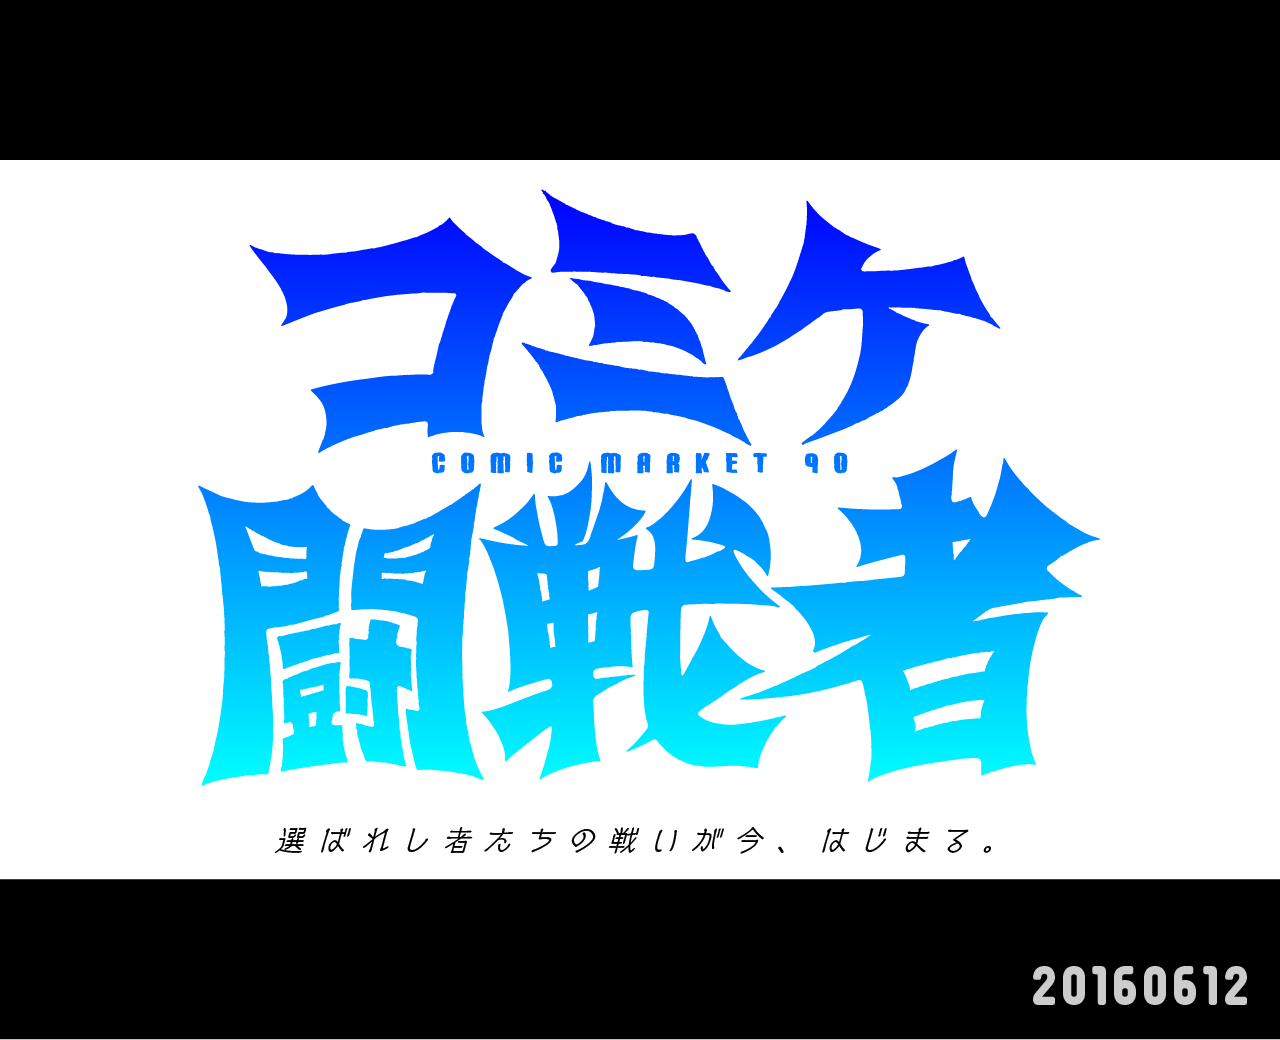 s20160612.png